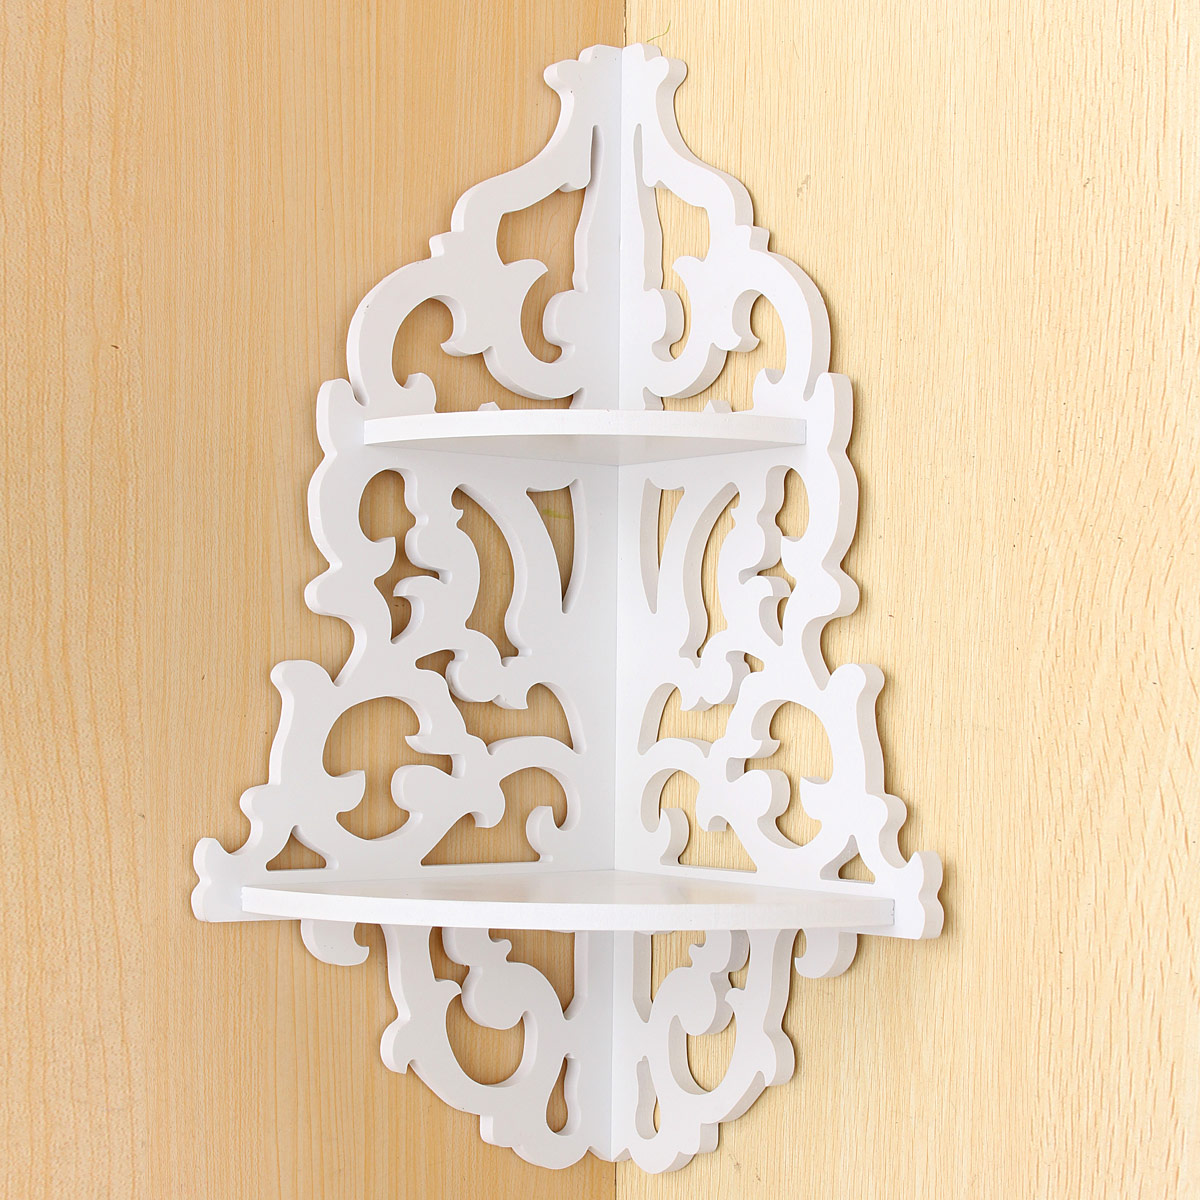 Wall Shelves Display Shelf Unit Chic Filigree Style Shelves Cut Out Design NEW